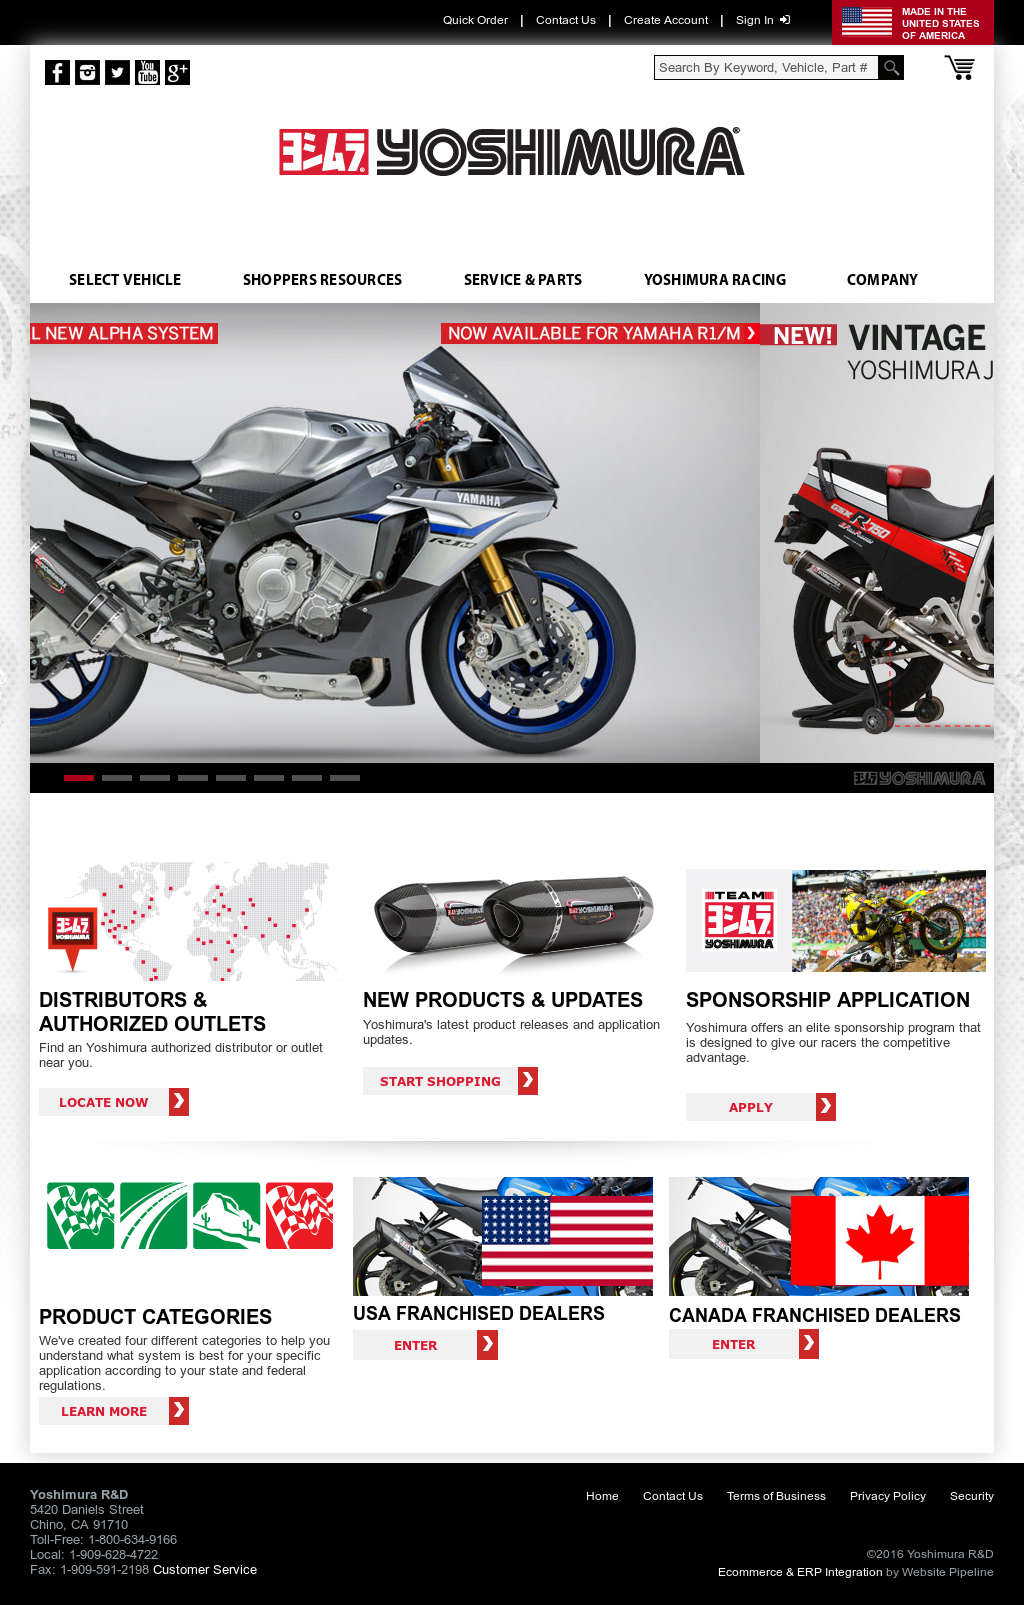 Yoshimura Competitors, Revenue and Employees - Owler Company